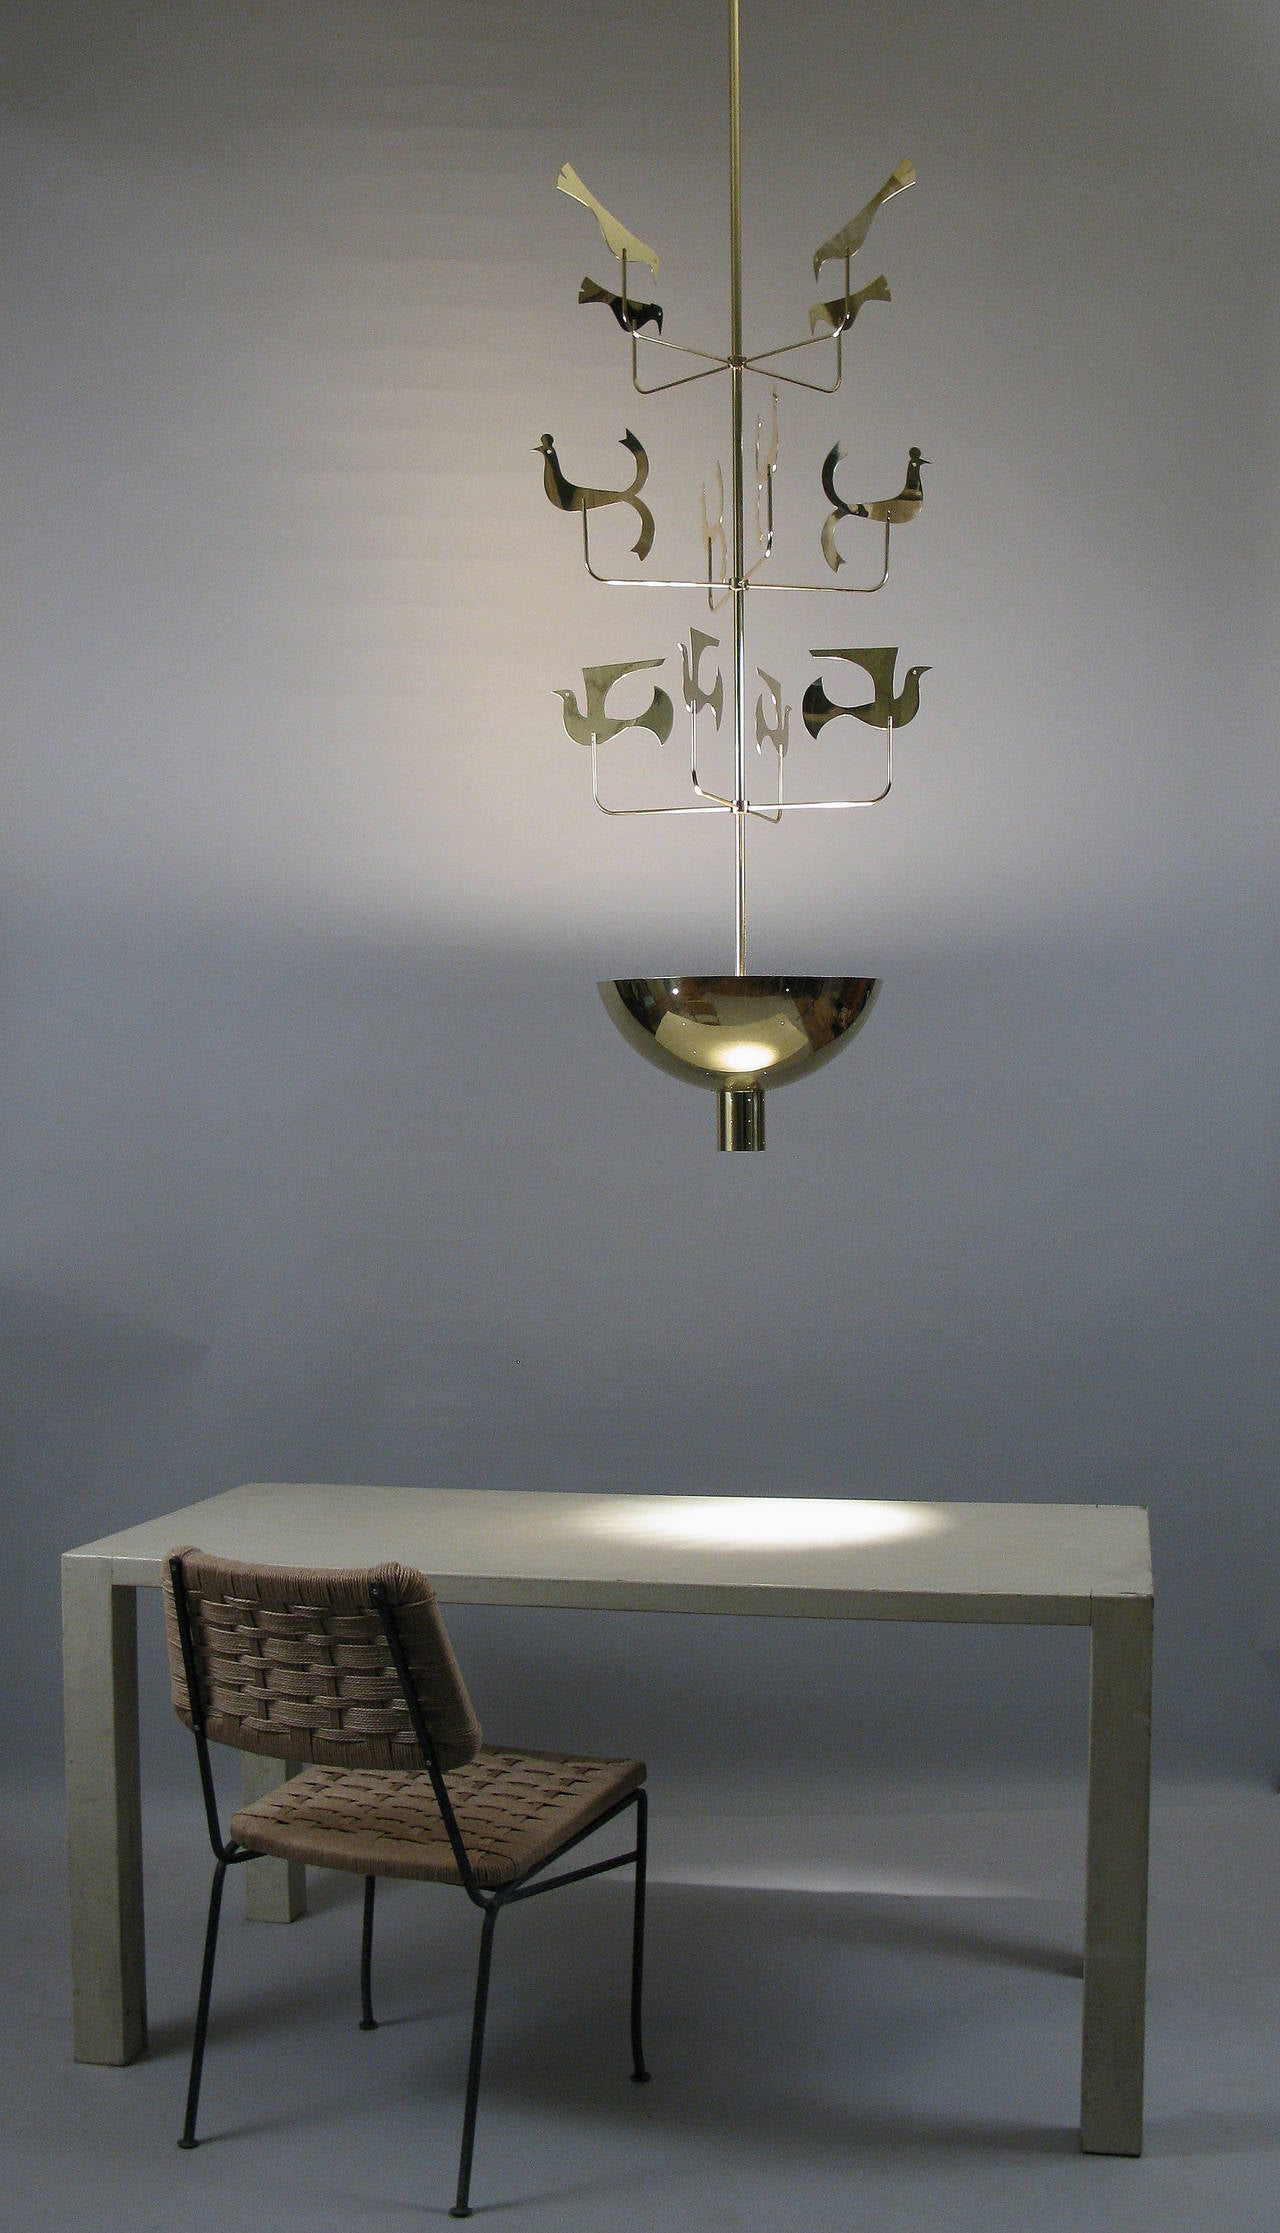 Rare 1940s Brass Chandelier by Tommi Parzinger for Parzinger